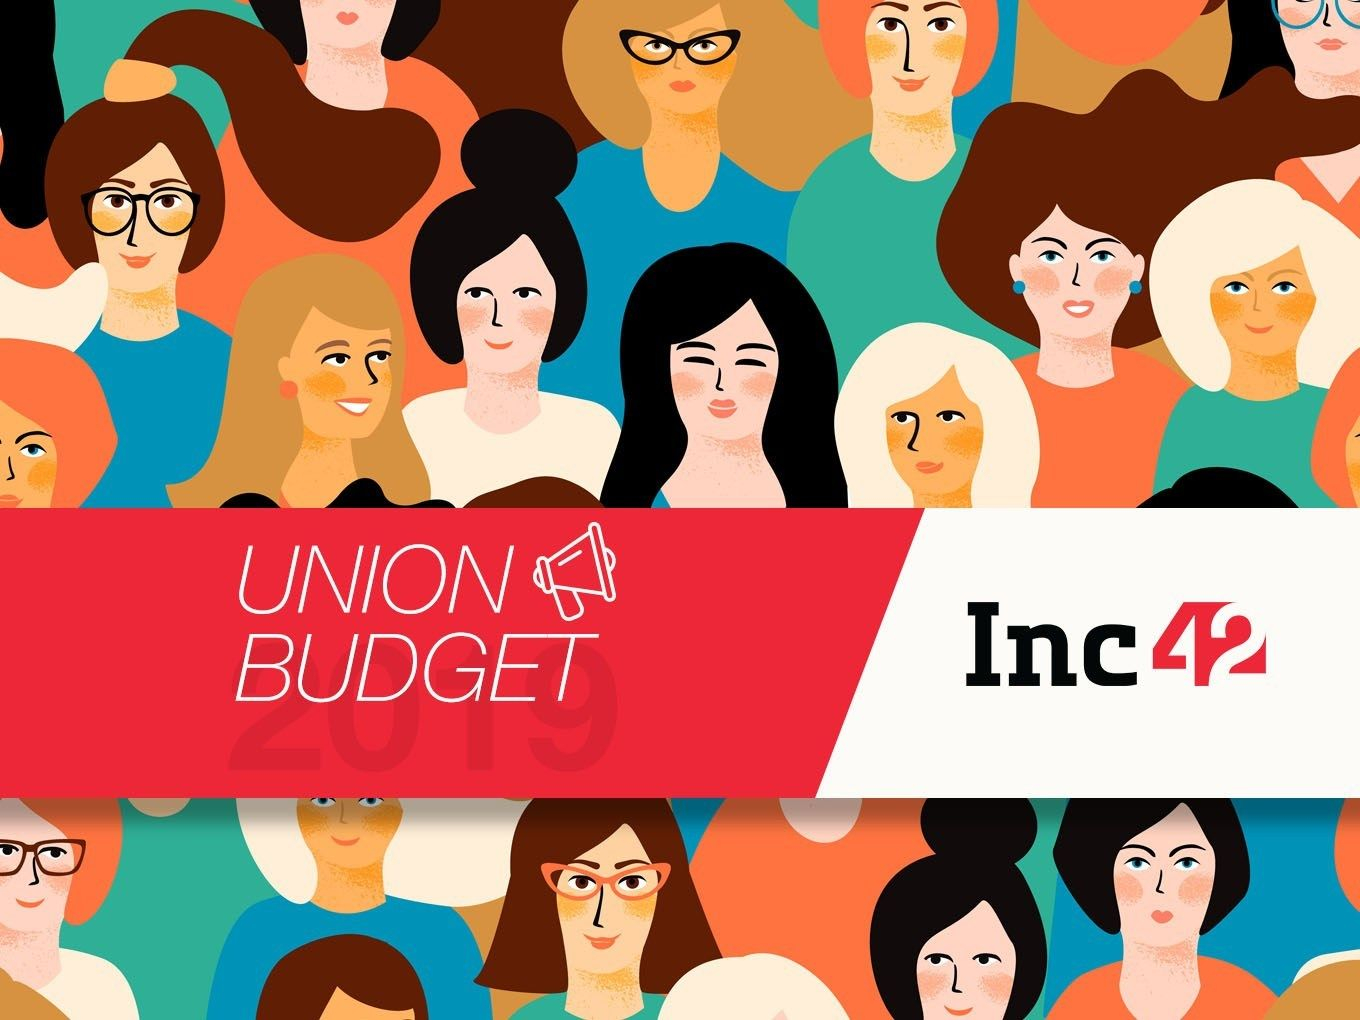 inc42-union-budget-2019-women-entrepreneurs-weigh-in-on-the-budget